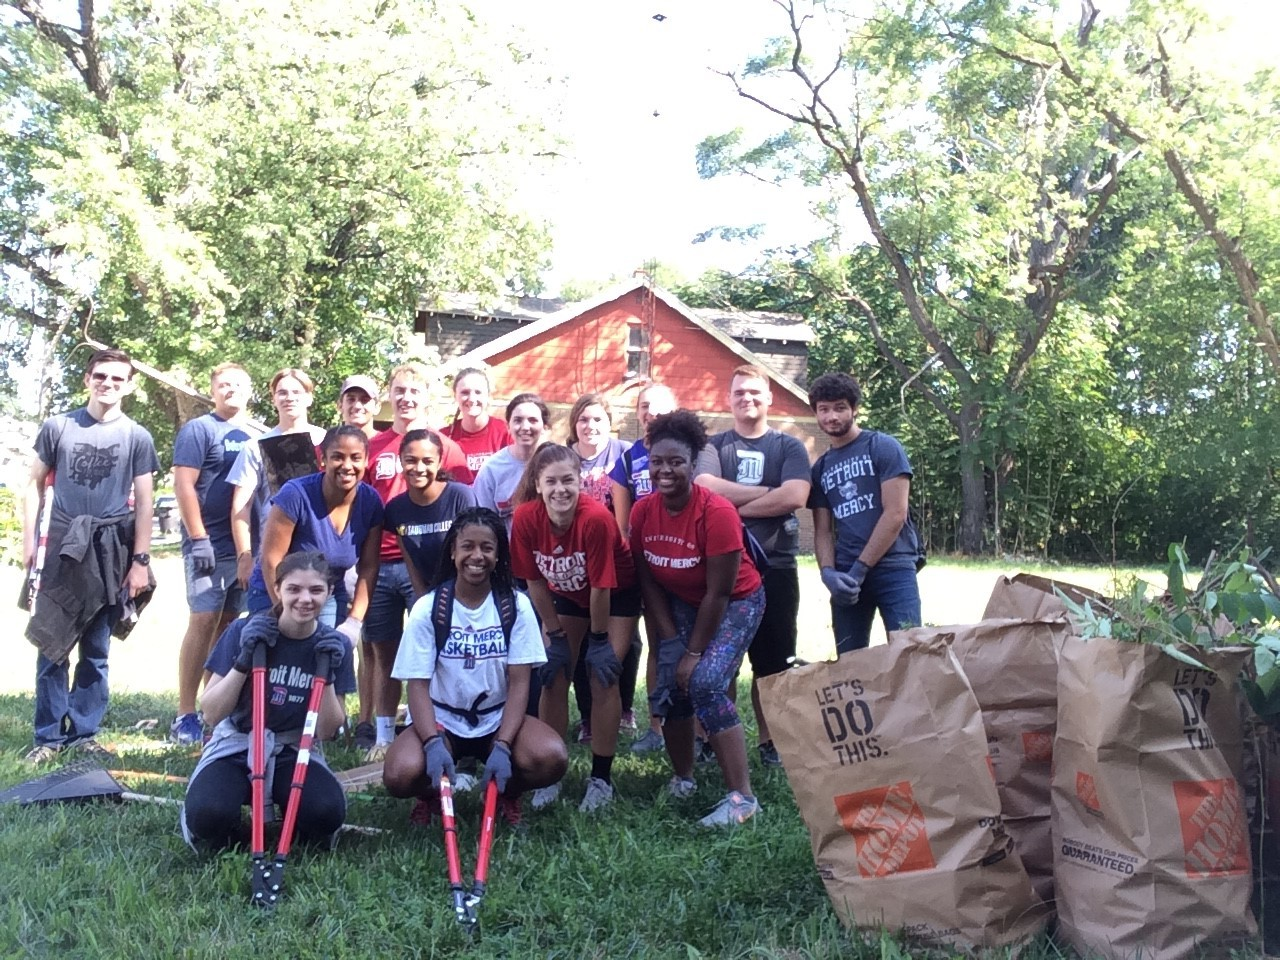 - On August 22nd-23rd, 2018 the Century Forward team led more than 30 volunteers from the University of Detroit Mercy's freshman class in clearing lots throughout Fitzgerald. Century Forward will partner with UDM for future volunteer opportunities that contribute to the creation of cleaner, safer spaces for the Fitzgerald community.